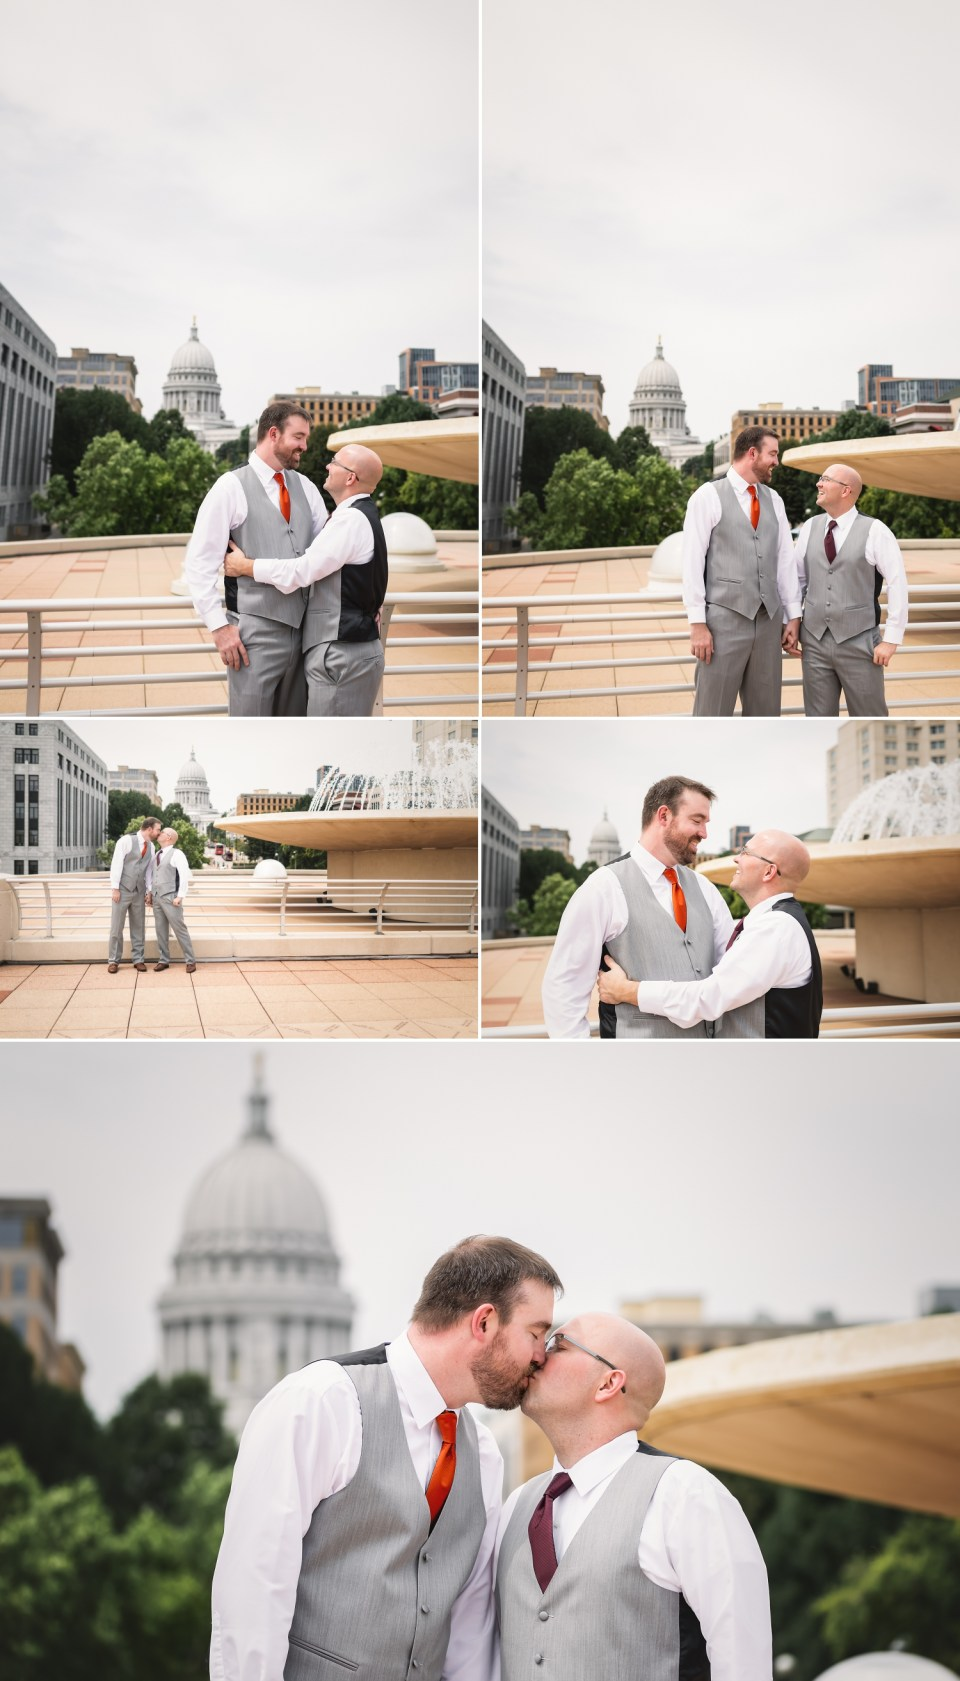 LGBTQ Wedding at The Monona Terrace in Madison, WI | Pink Spruce Photography | www.pinksprucephotography.com